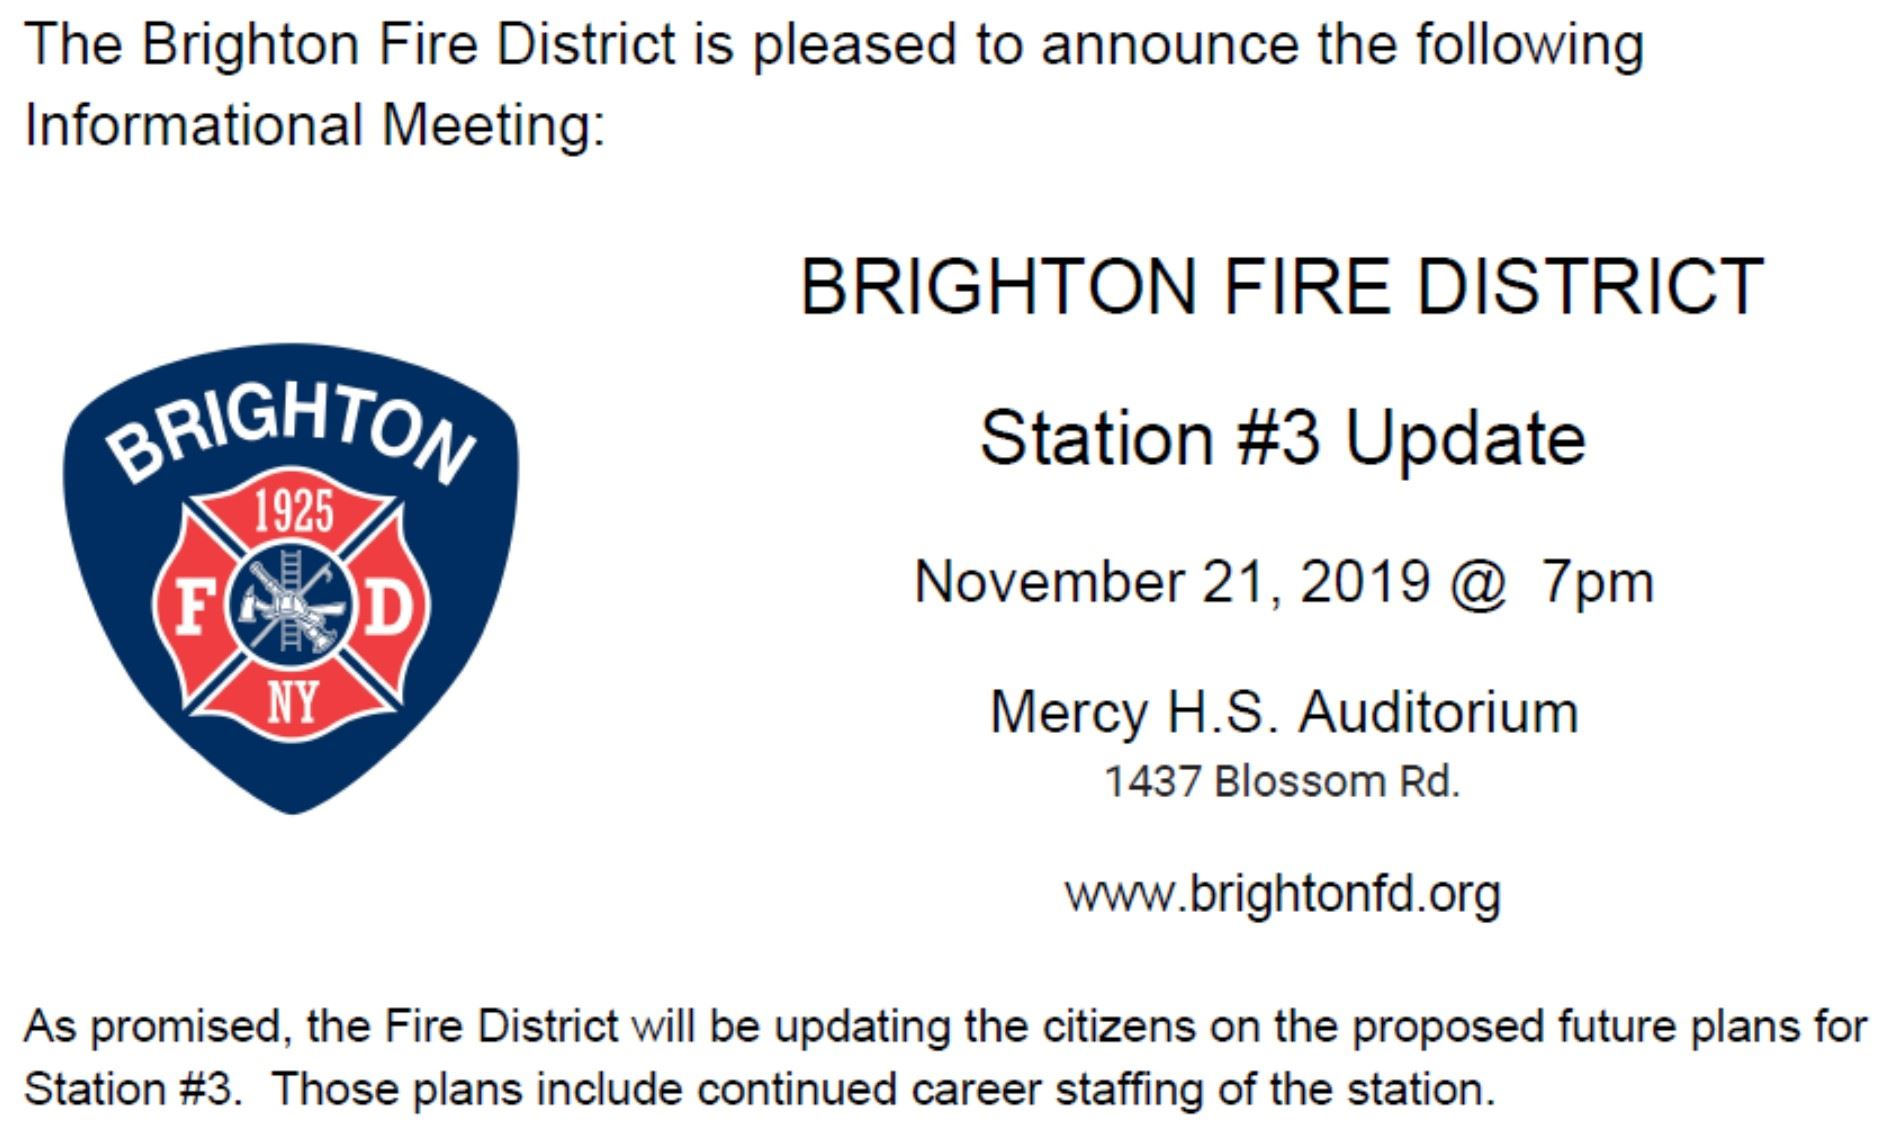 BFD Station 3 update posting 11-21-19